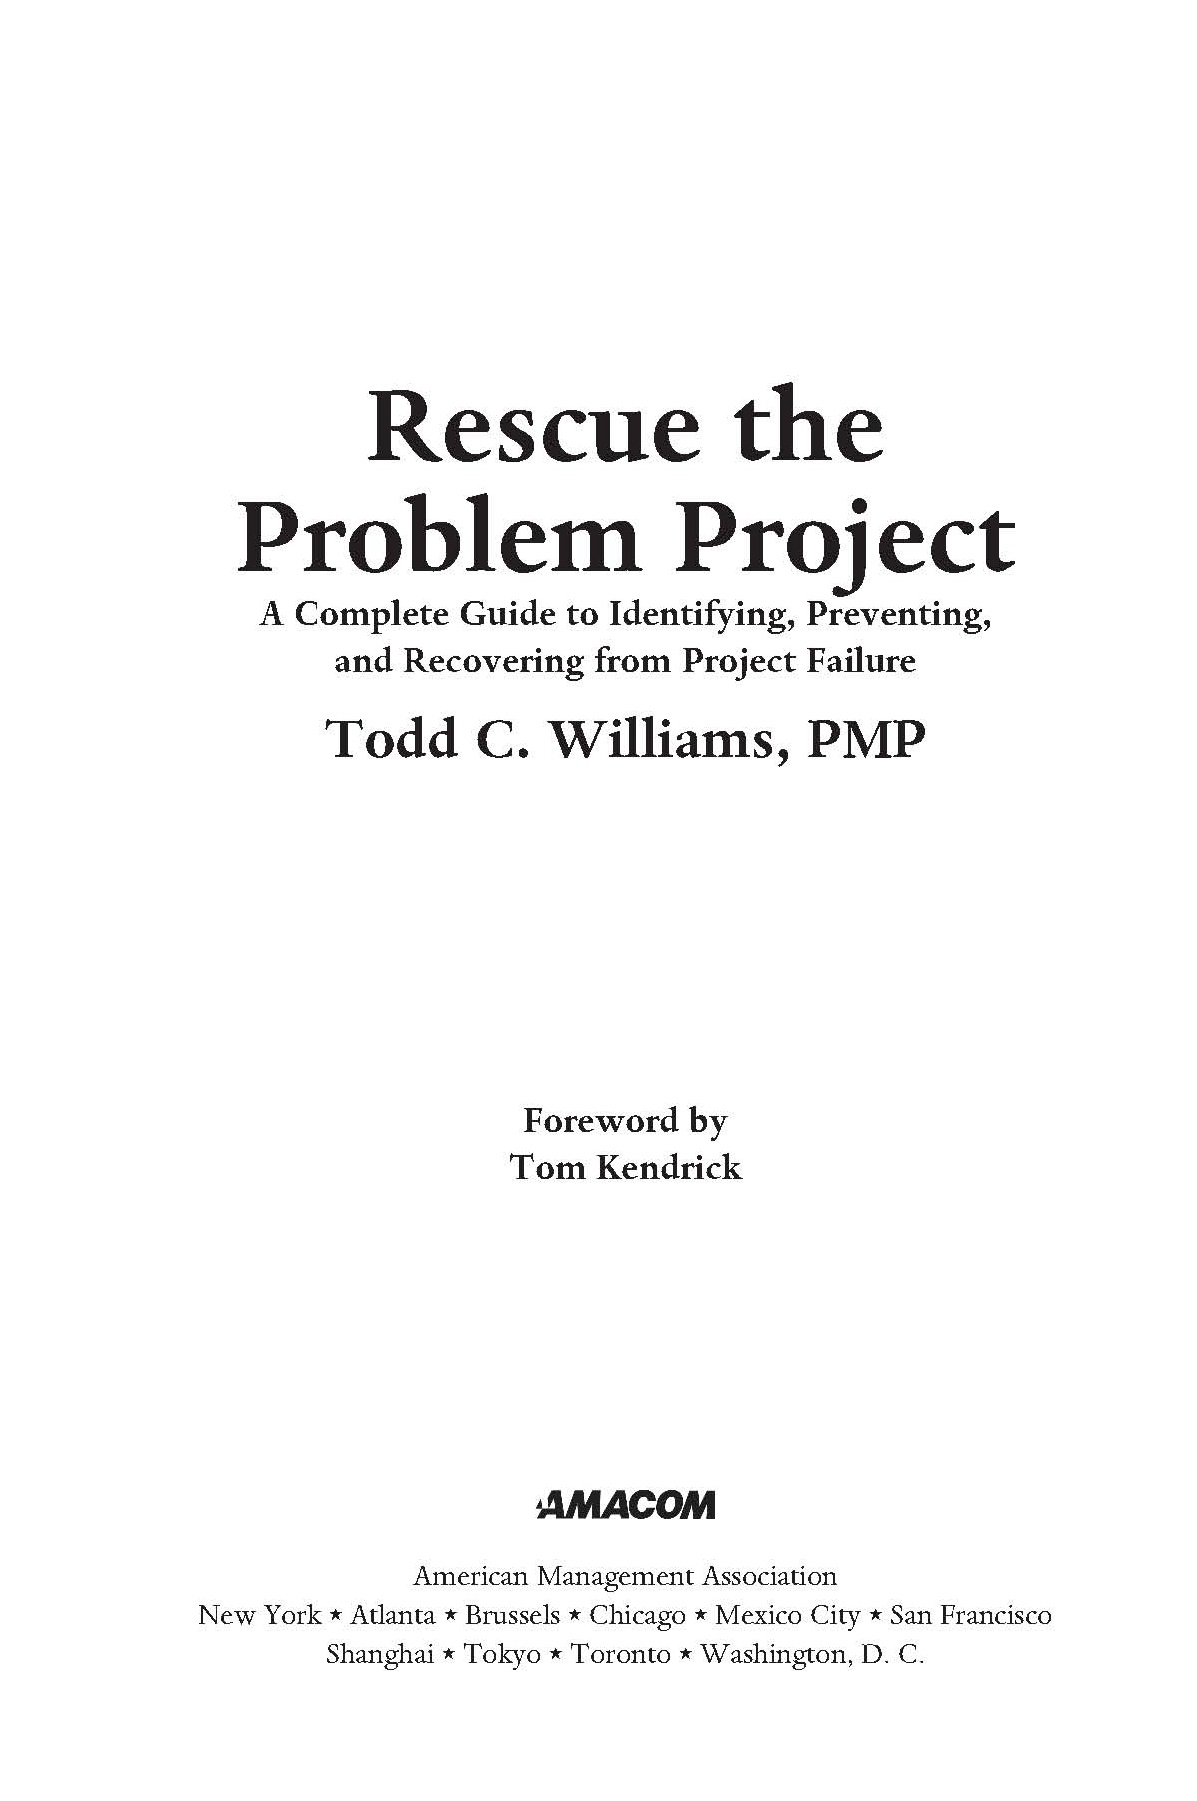 Rescue the Problem Project page iii